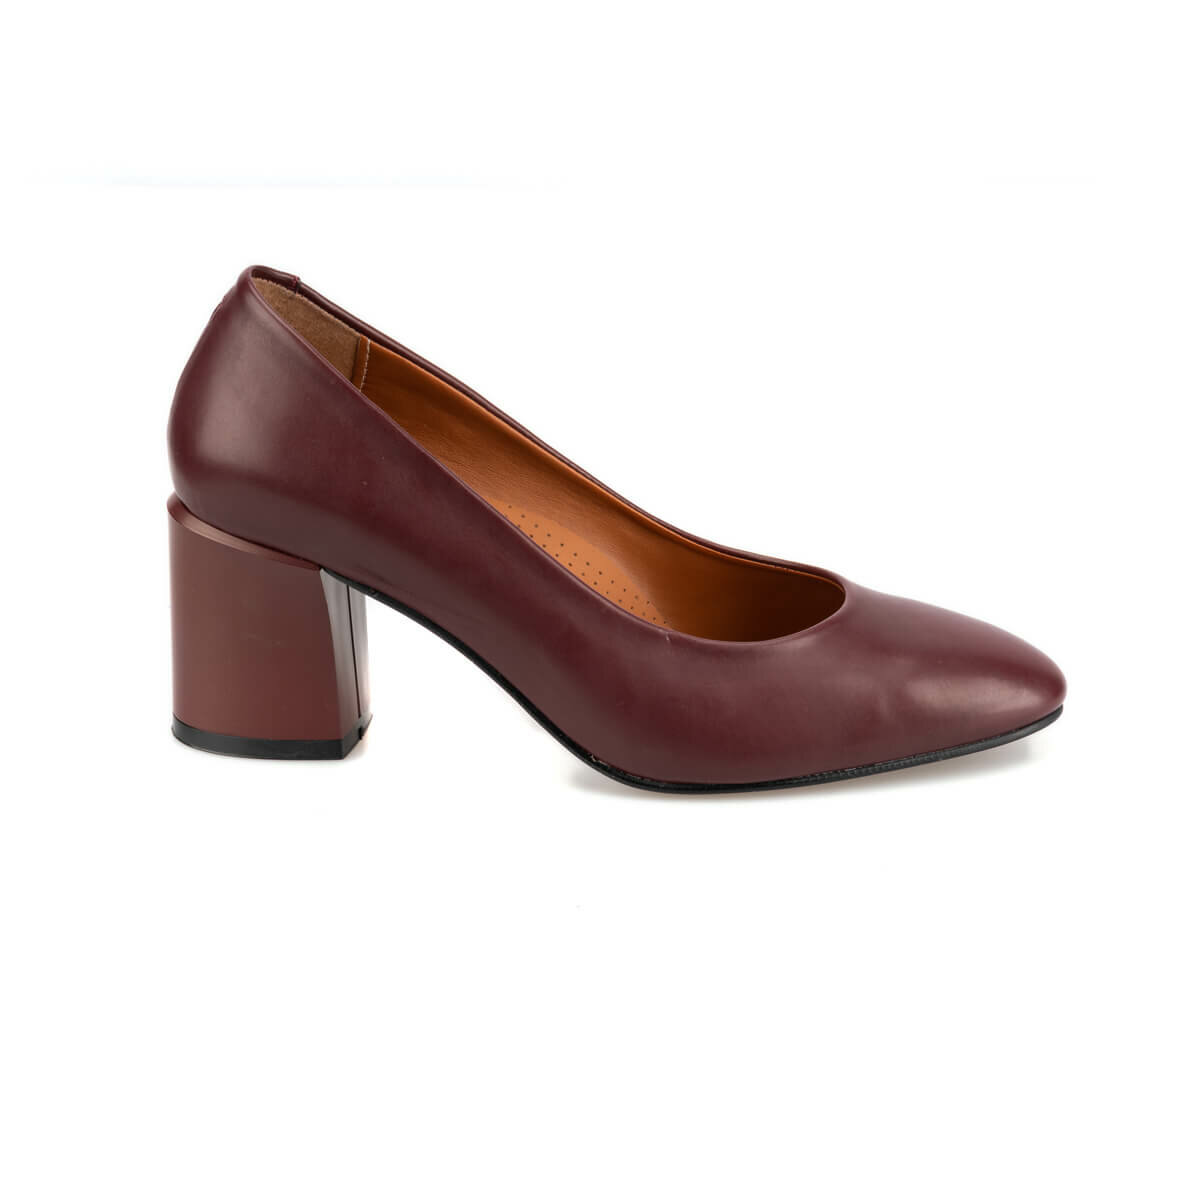 FLO 92.314114.Z Burgundy Women 'S Shoes Polaris